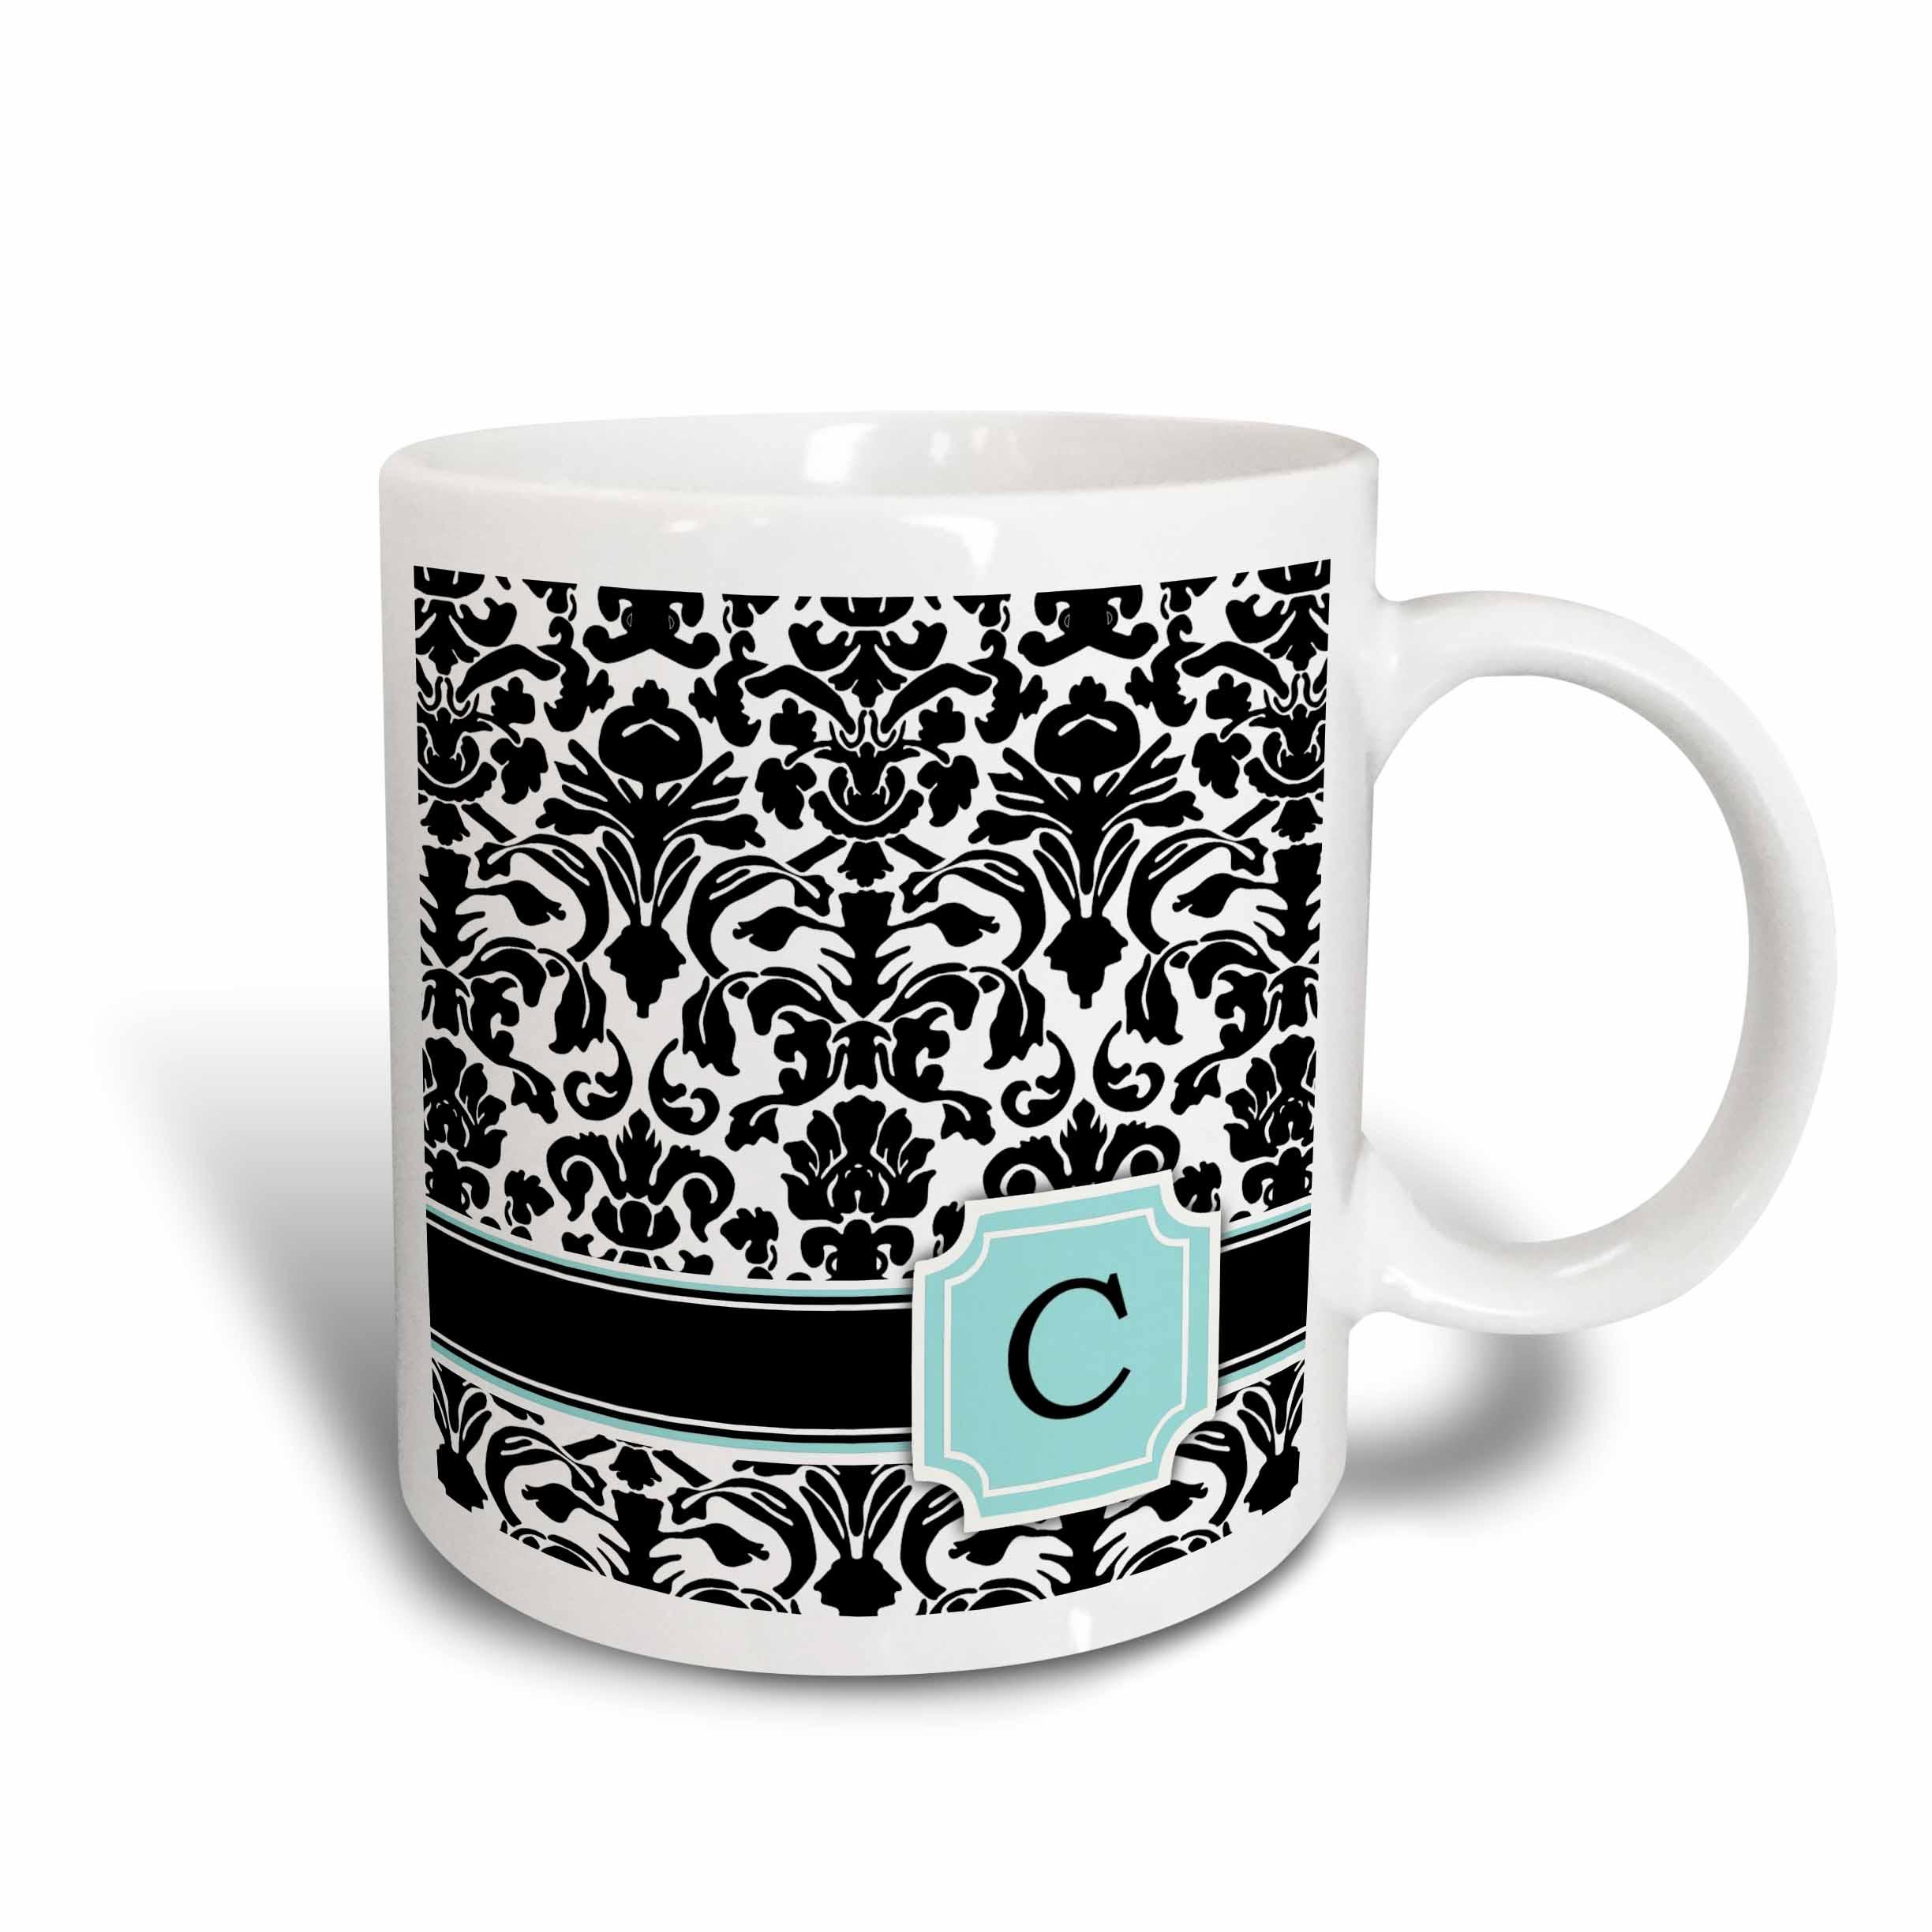 3dRose Letter C personal monogrammed mint blue black and white damask pattern - classy personalized initial, Ceramic Mug, 15-ounce